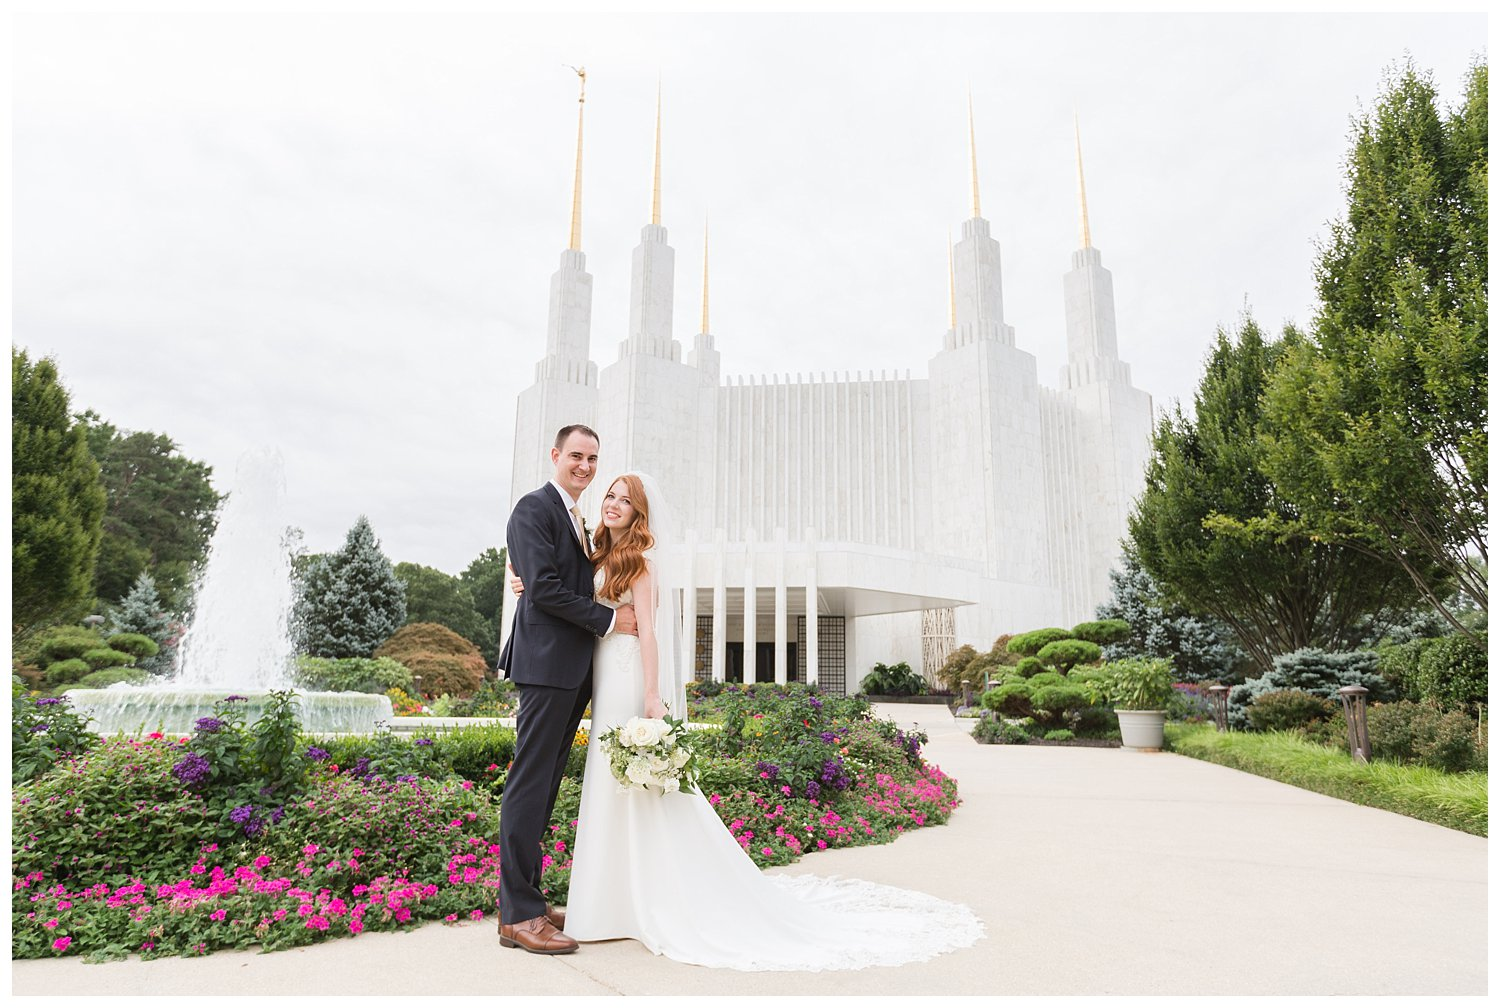 elovephotos Washington DC LDS Temple Photographer_0921.jpg